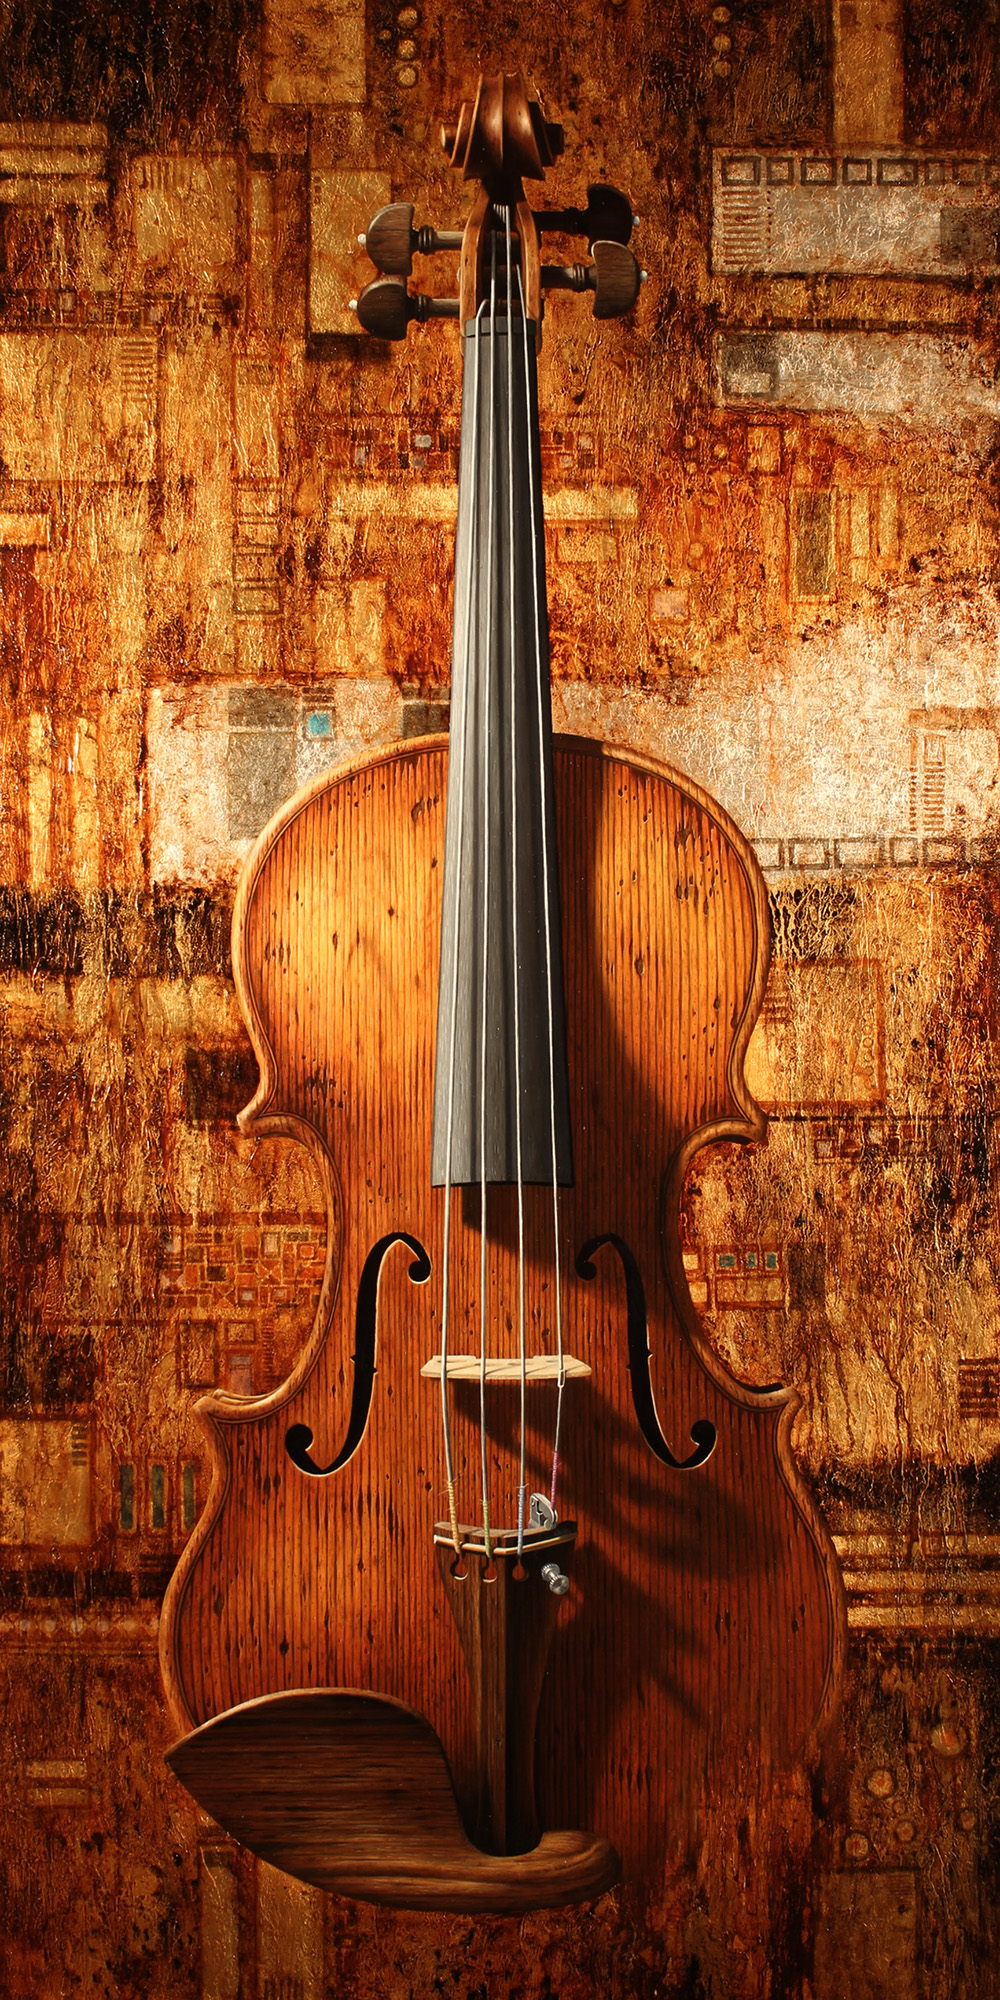 The Golden Violin